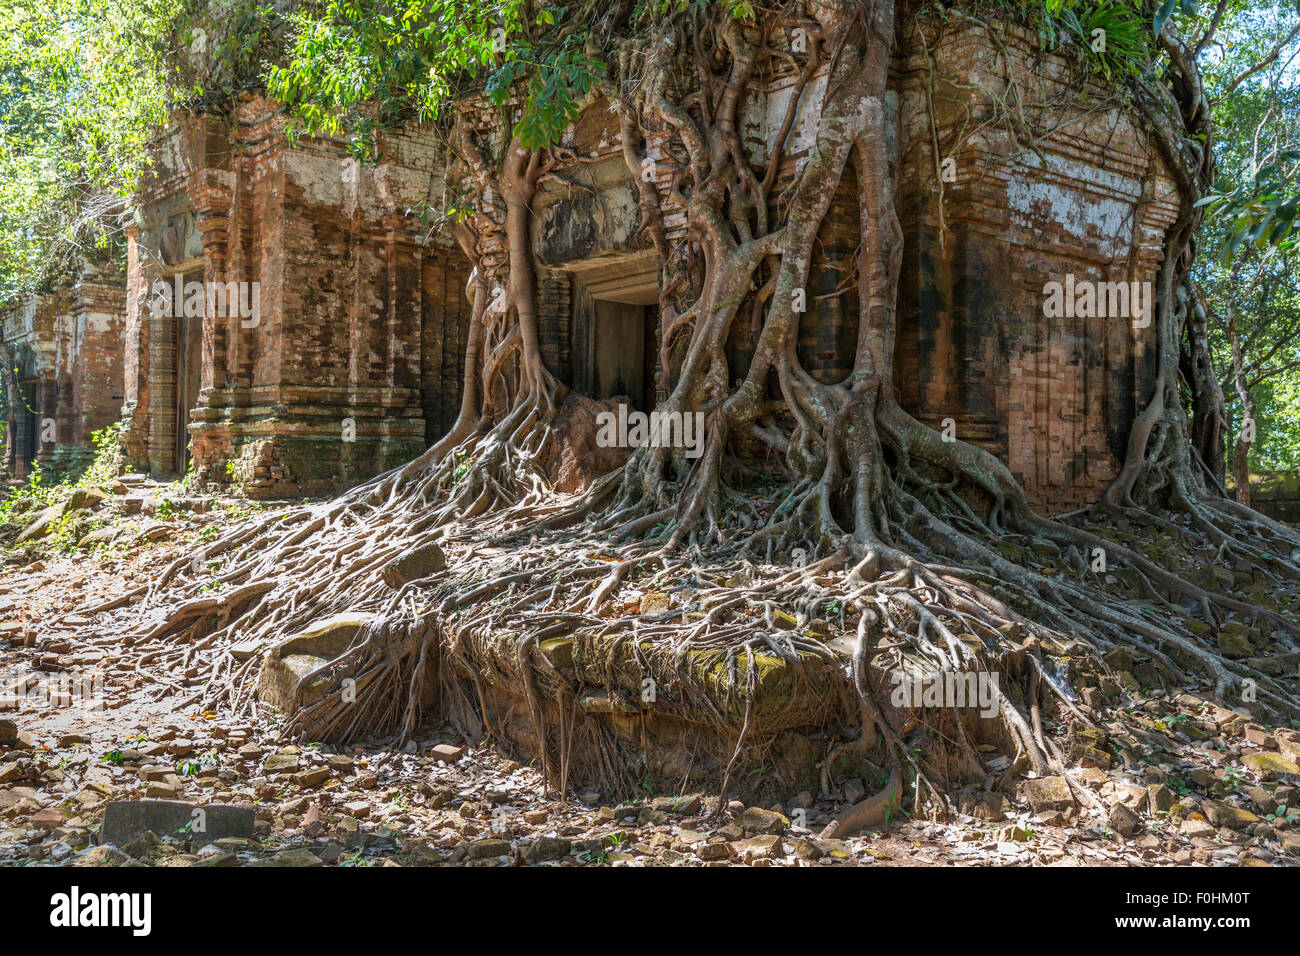 Root covered ruins of a Khmer temple at Koh Ker, Cambodia, which is 2.5 hours north of Siem Reap & Angkor.Stock Photo